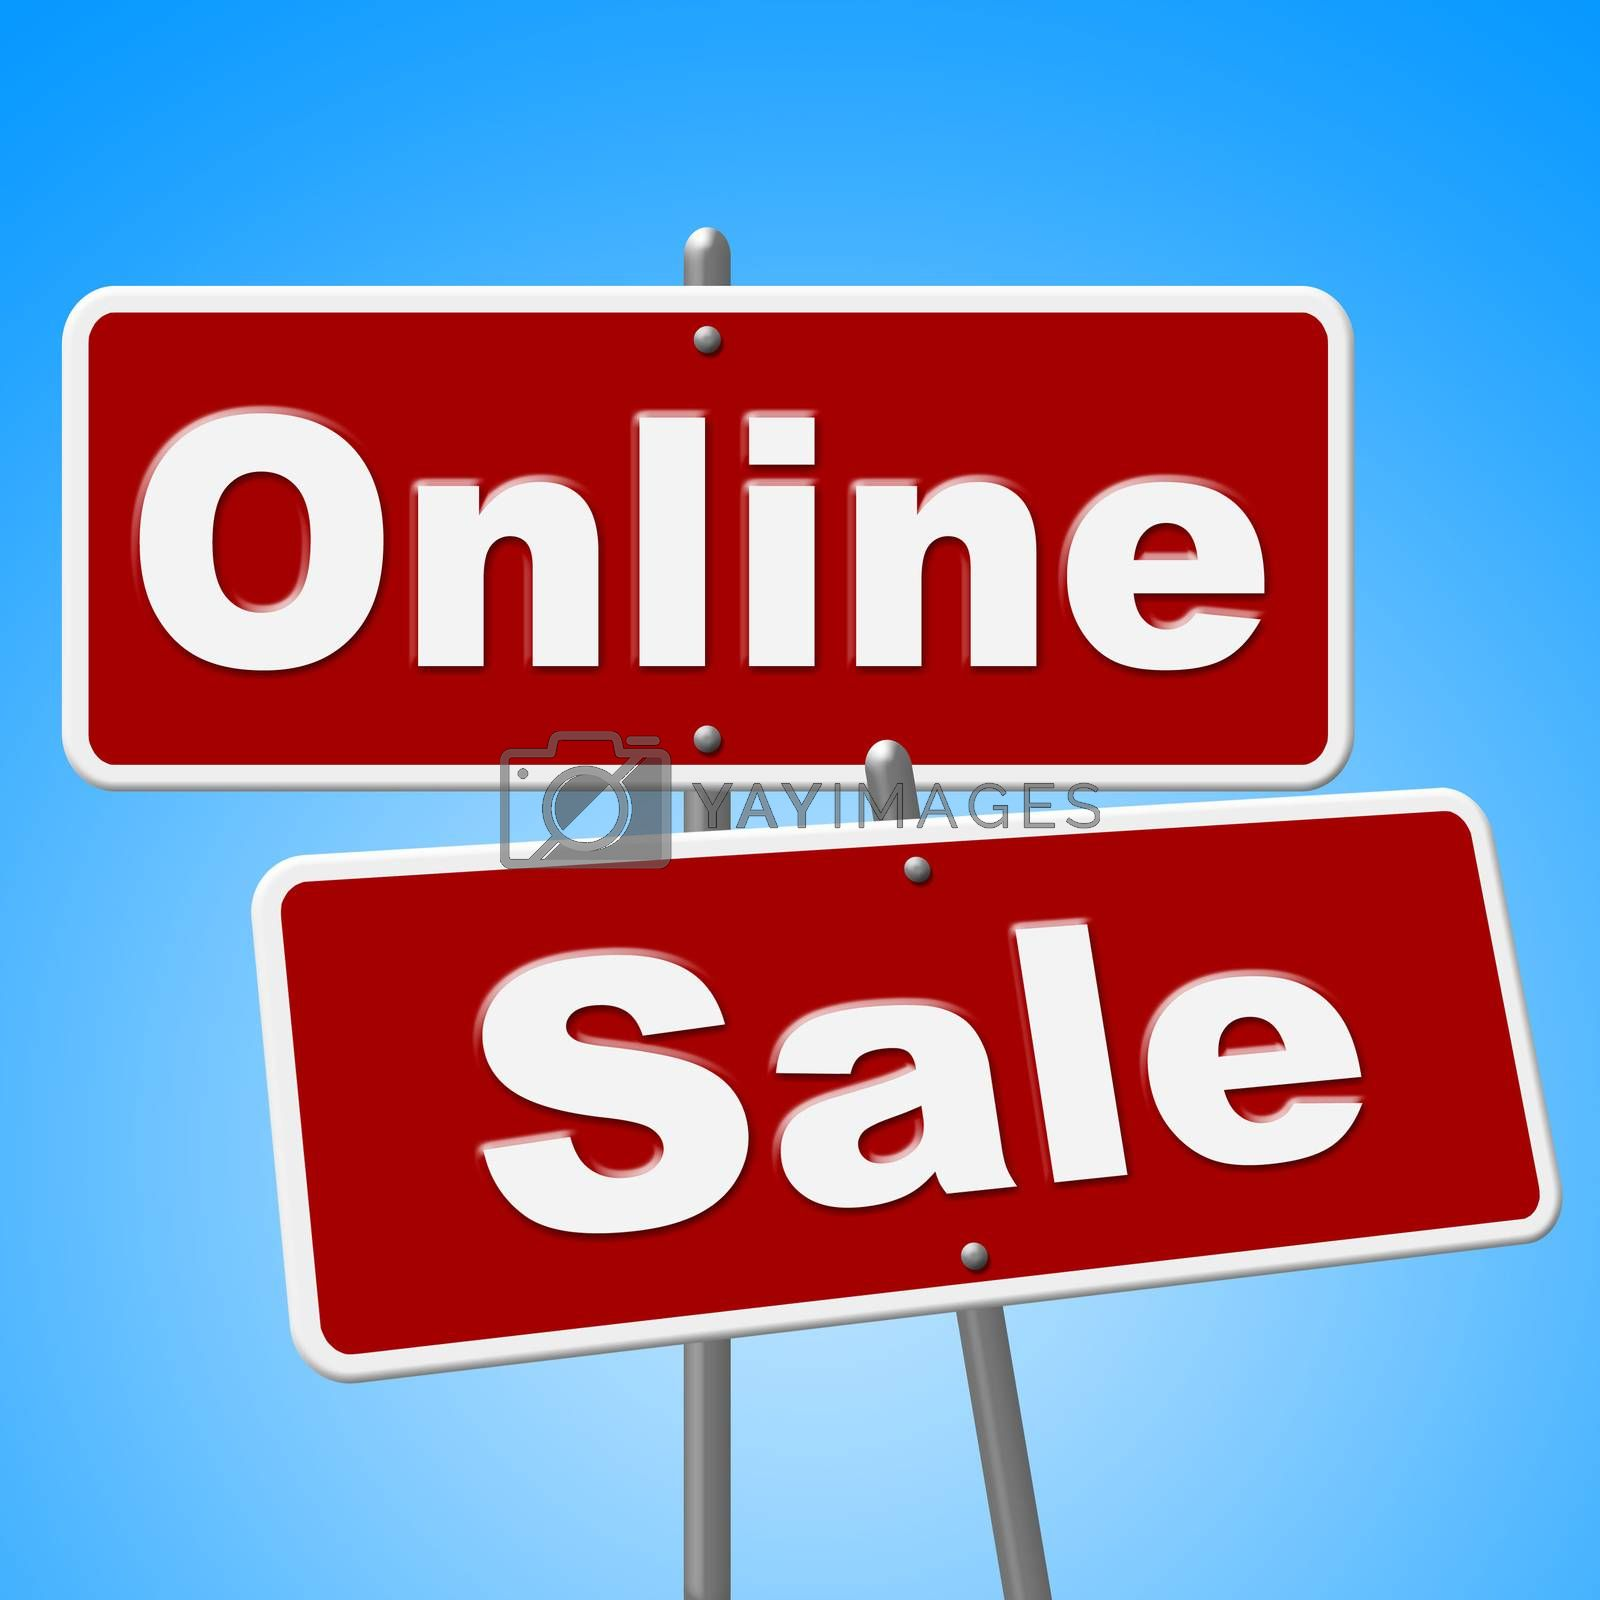 Online Sale Signs Shows Web Site And Retail by stuartmiles